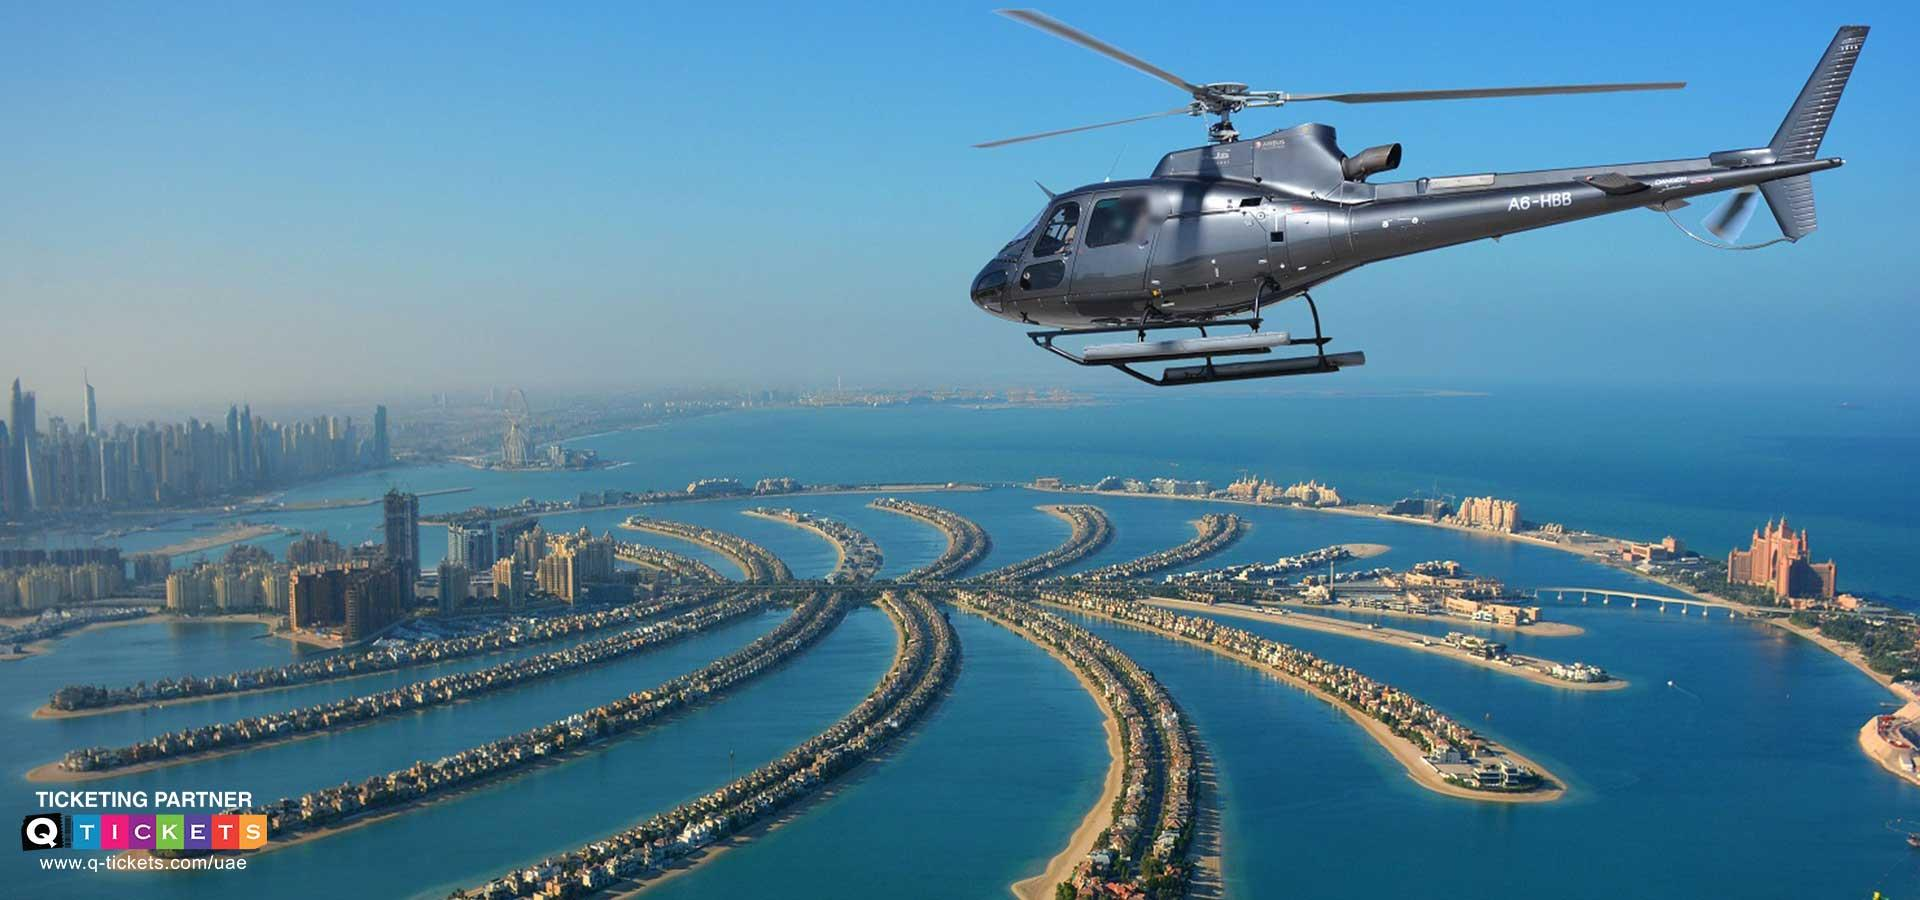 Buy Tickets Online For Movies, Events & Sports In Dubai | Q